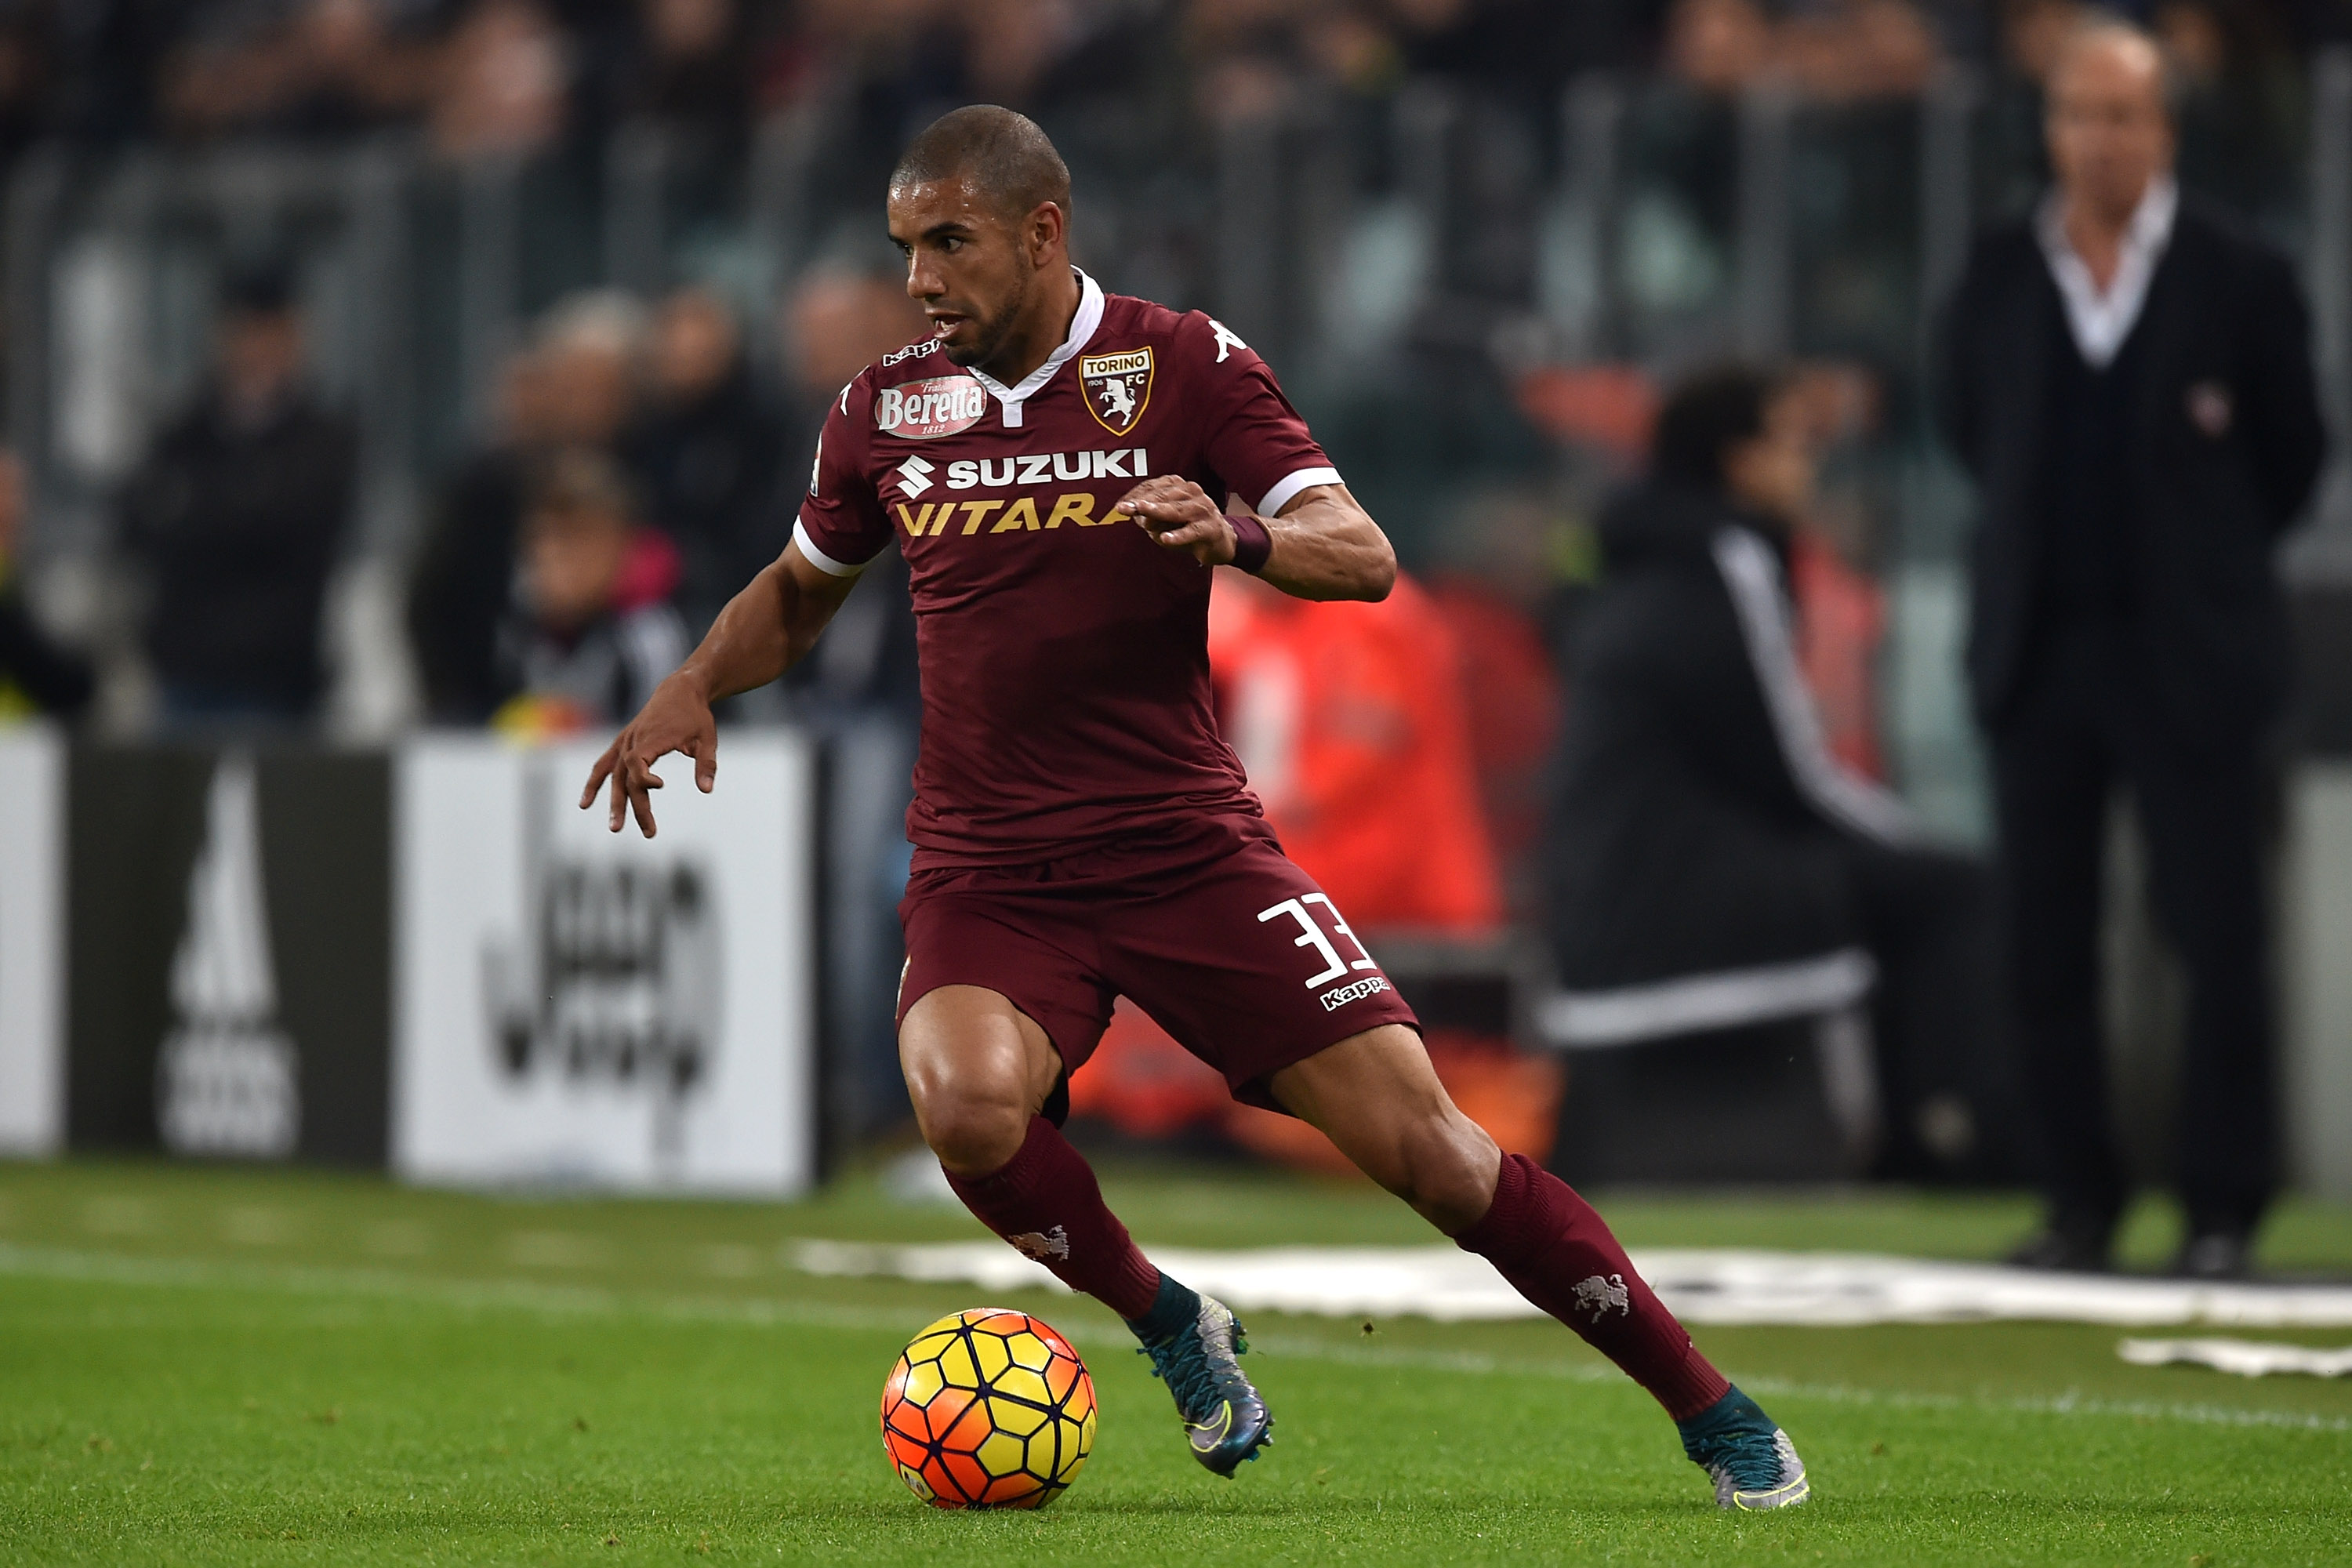 TURIN, ITALY - OCTOBER 31: Bruno Peres of Torino FC in action during the Serie A match between Juventus FC and Torino FC at Juventus Arena on October 31, 2015 in Turin, Italy. (Photo by Valerio Pennicino/Getty Images)